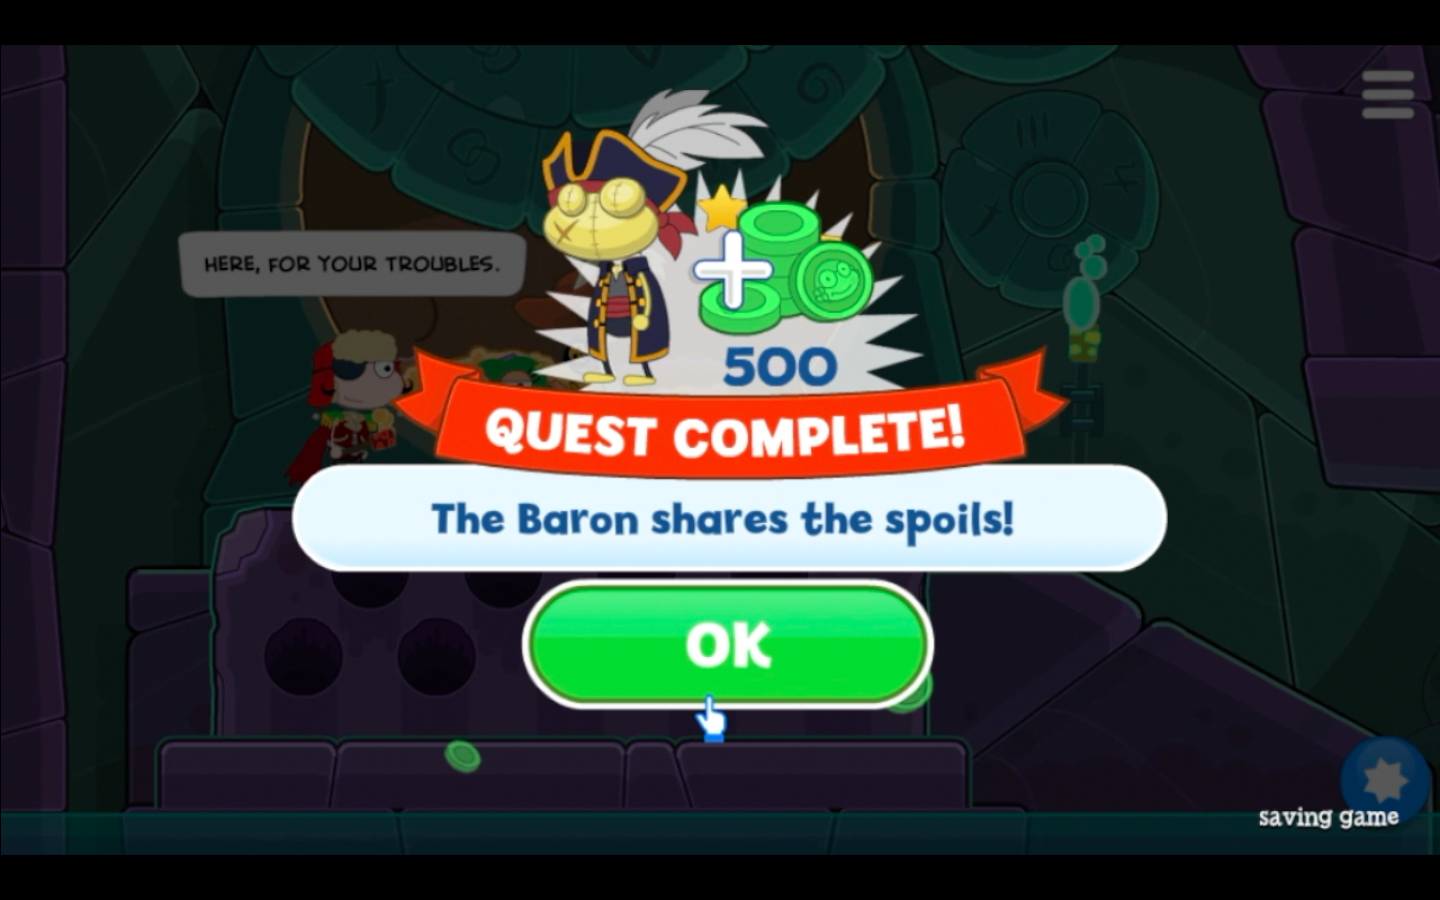 The Baron's Crusade quest is complete!